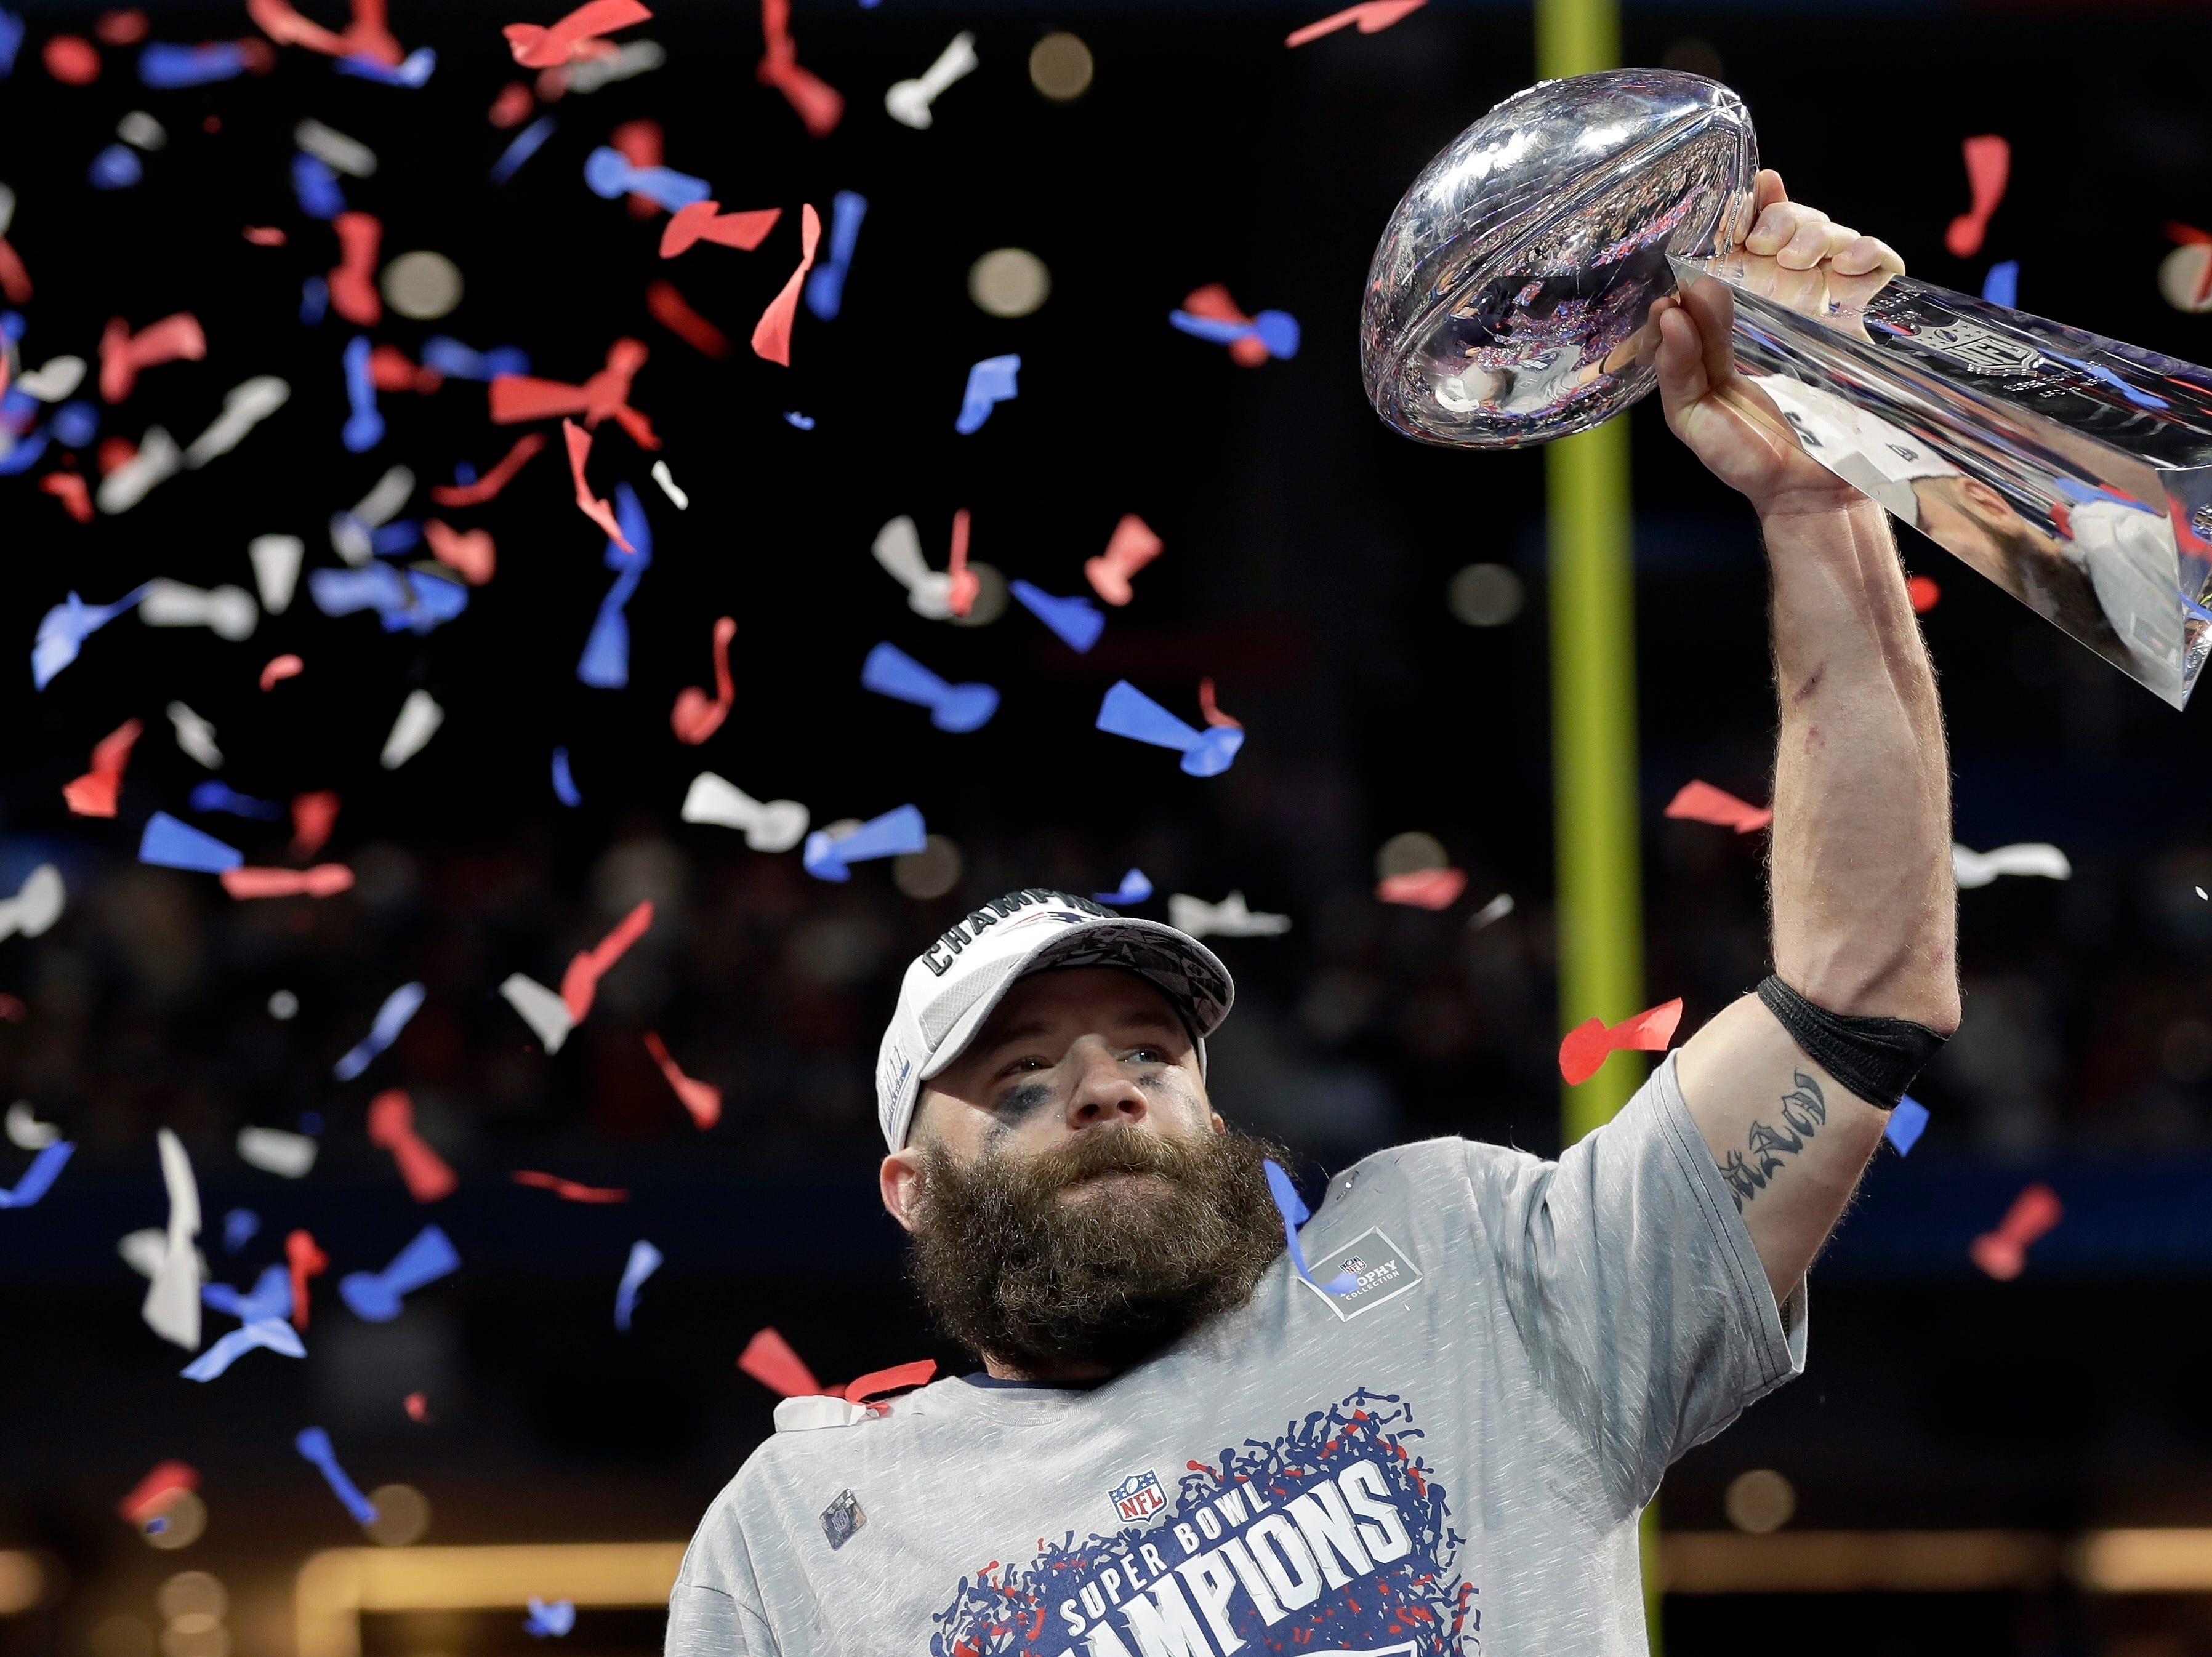 New England Patriots' Julian Edelman holds the Lombardi trophy after the game.